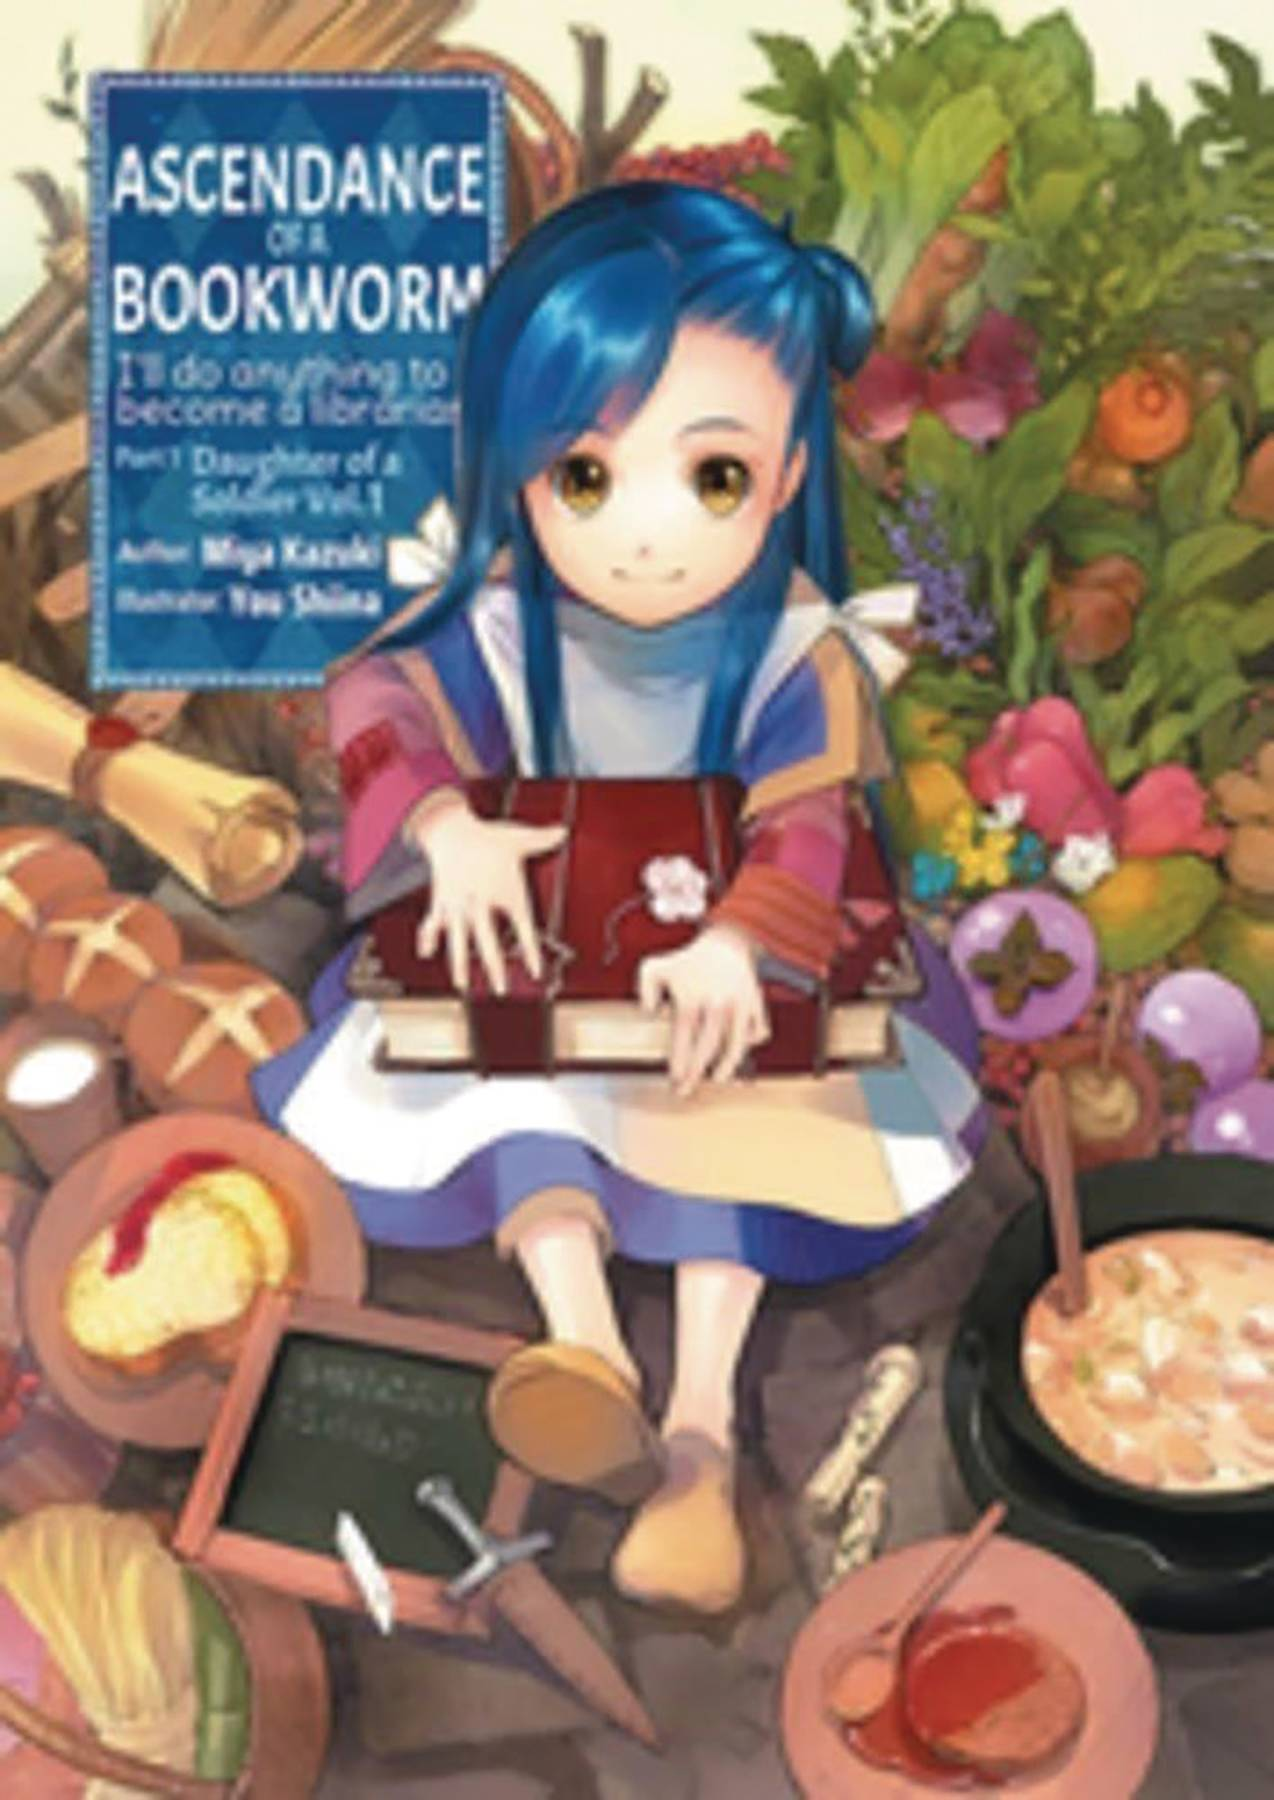 ASCENDANCE OF A BOOKWORM LIGHT NOVEL SC VOL 01 PART 1